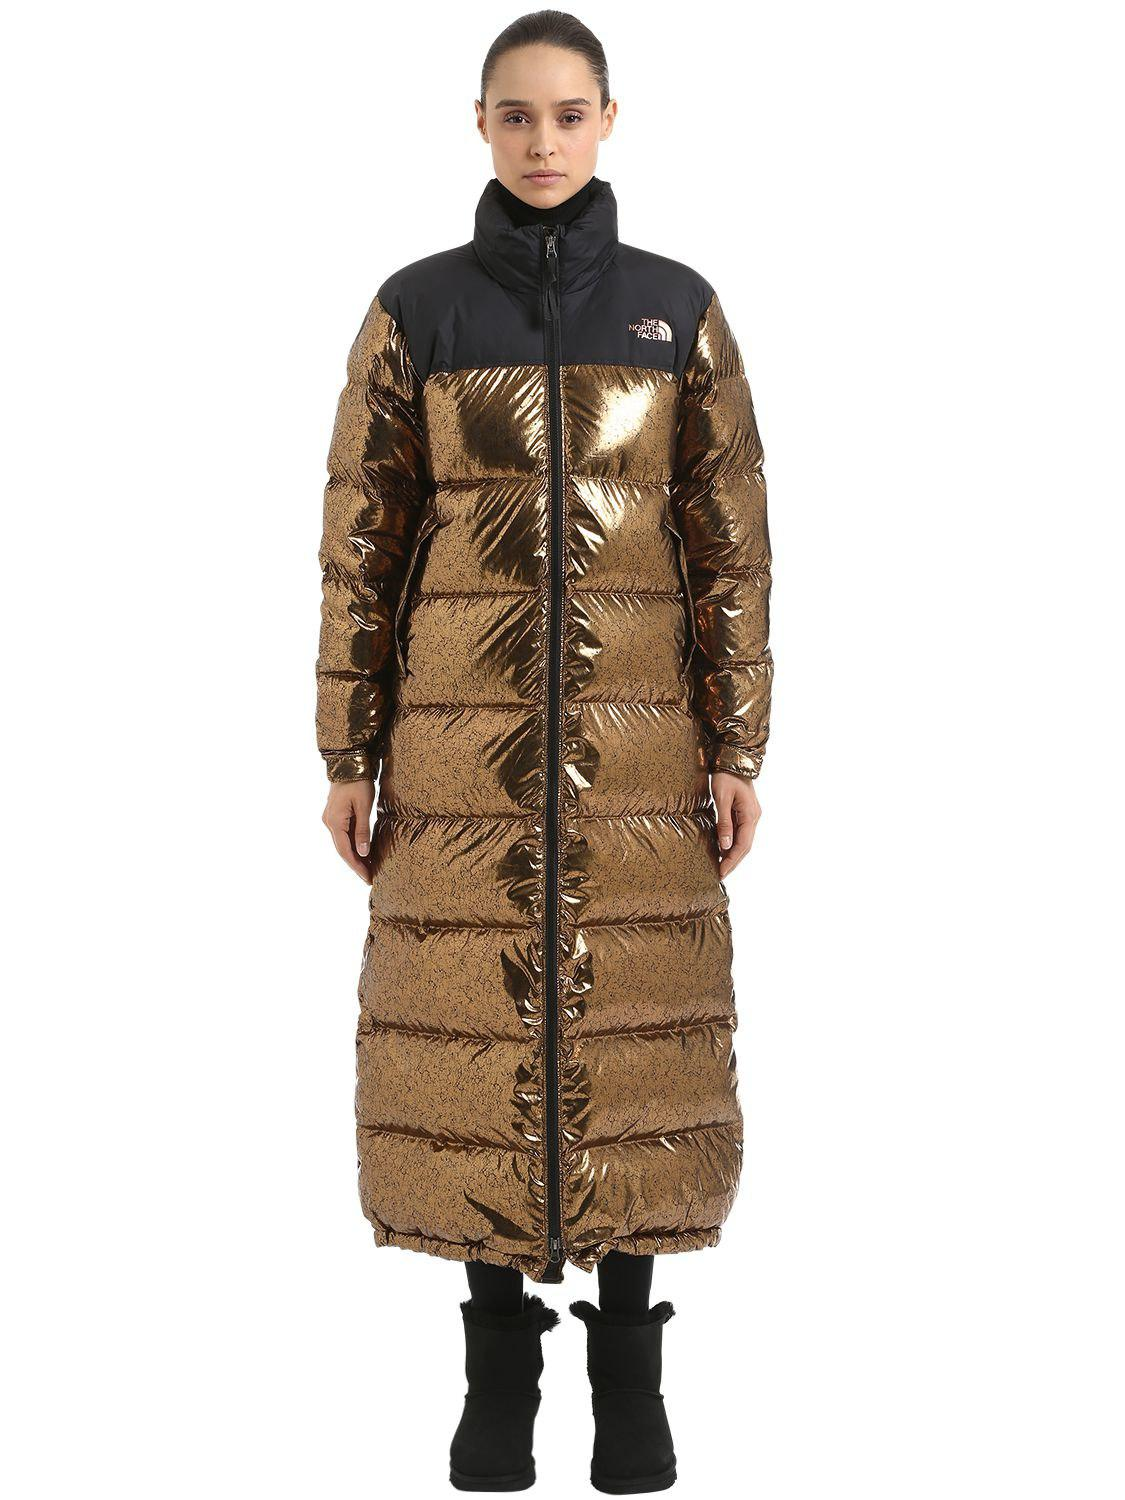 c04425bce93cf The North Face Nuptse Duster Long Down Jacket in Metallic - Lyst